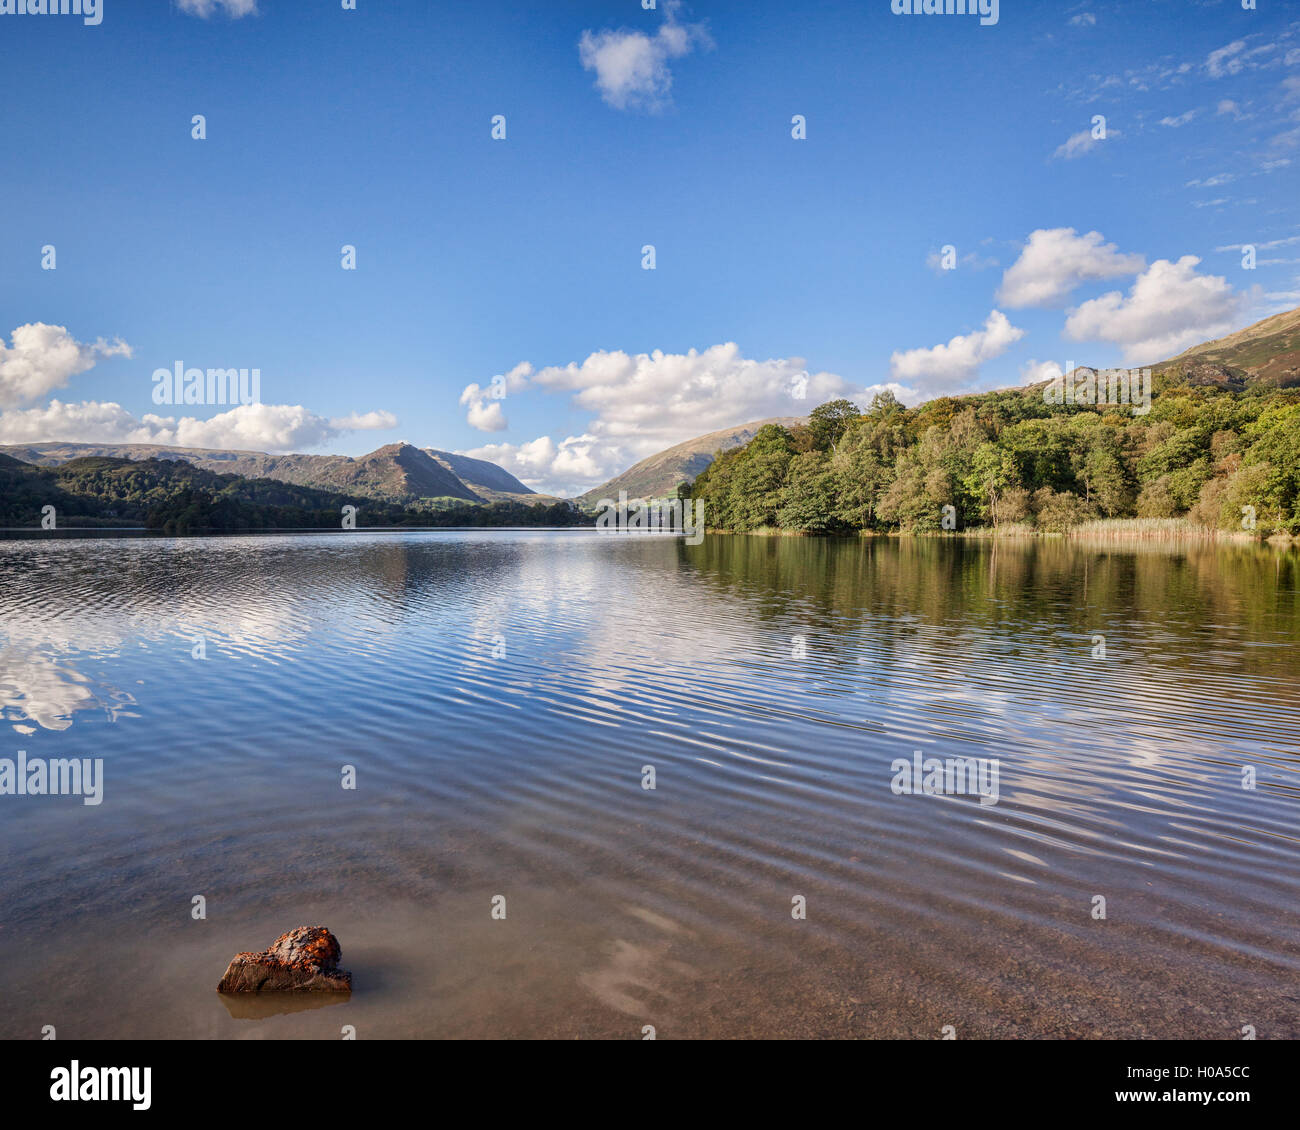 Grasmere, Lake District National Park, Cumbria, England, UK - Stock Image